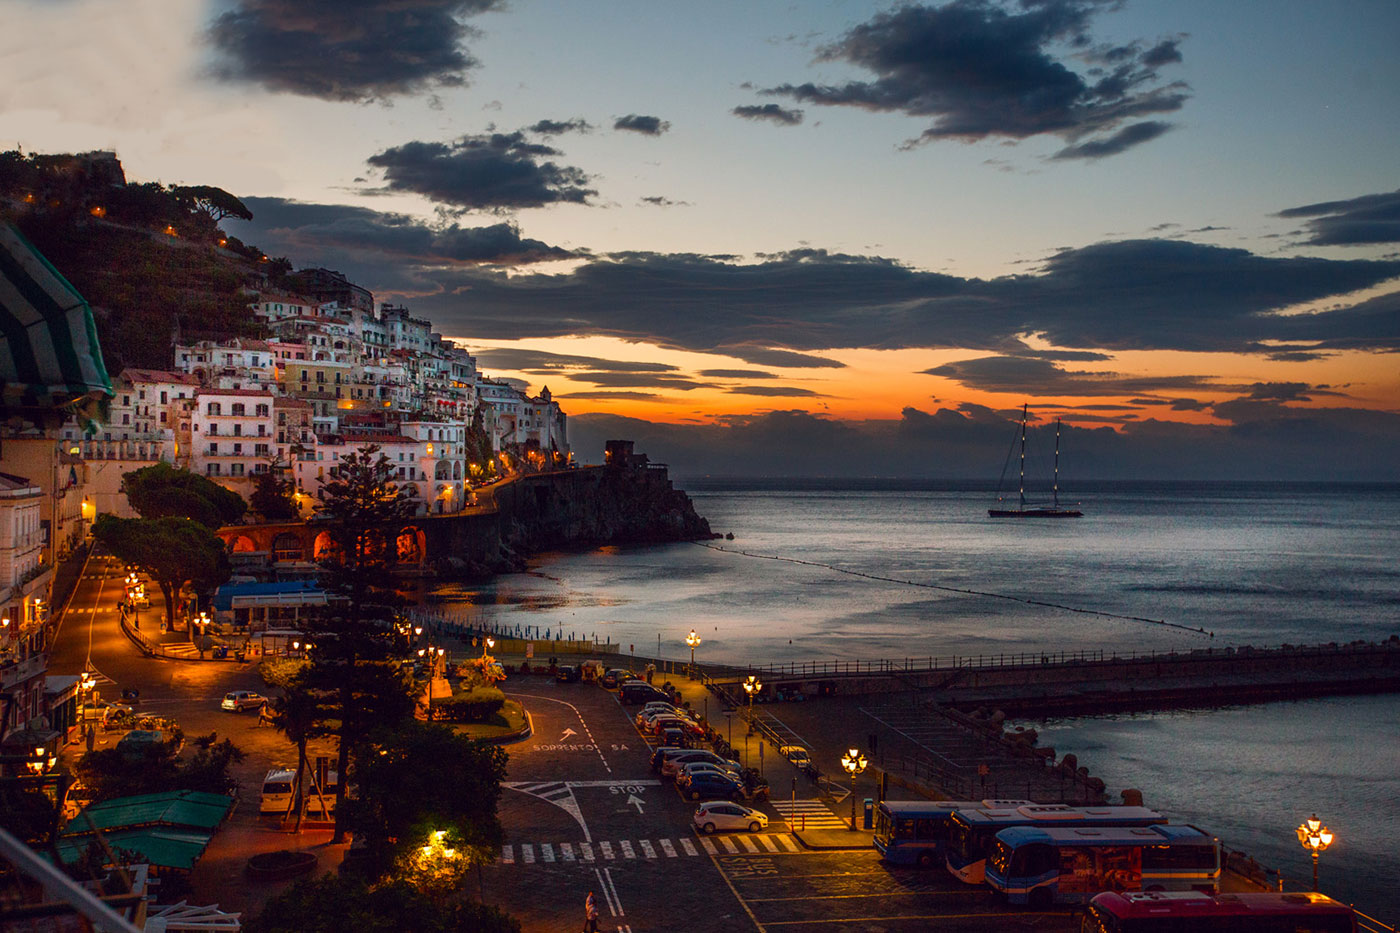 Wedding in Amalfi, Italy